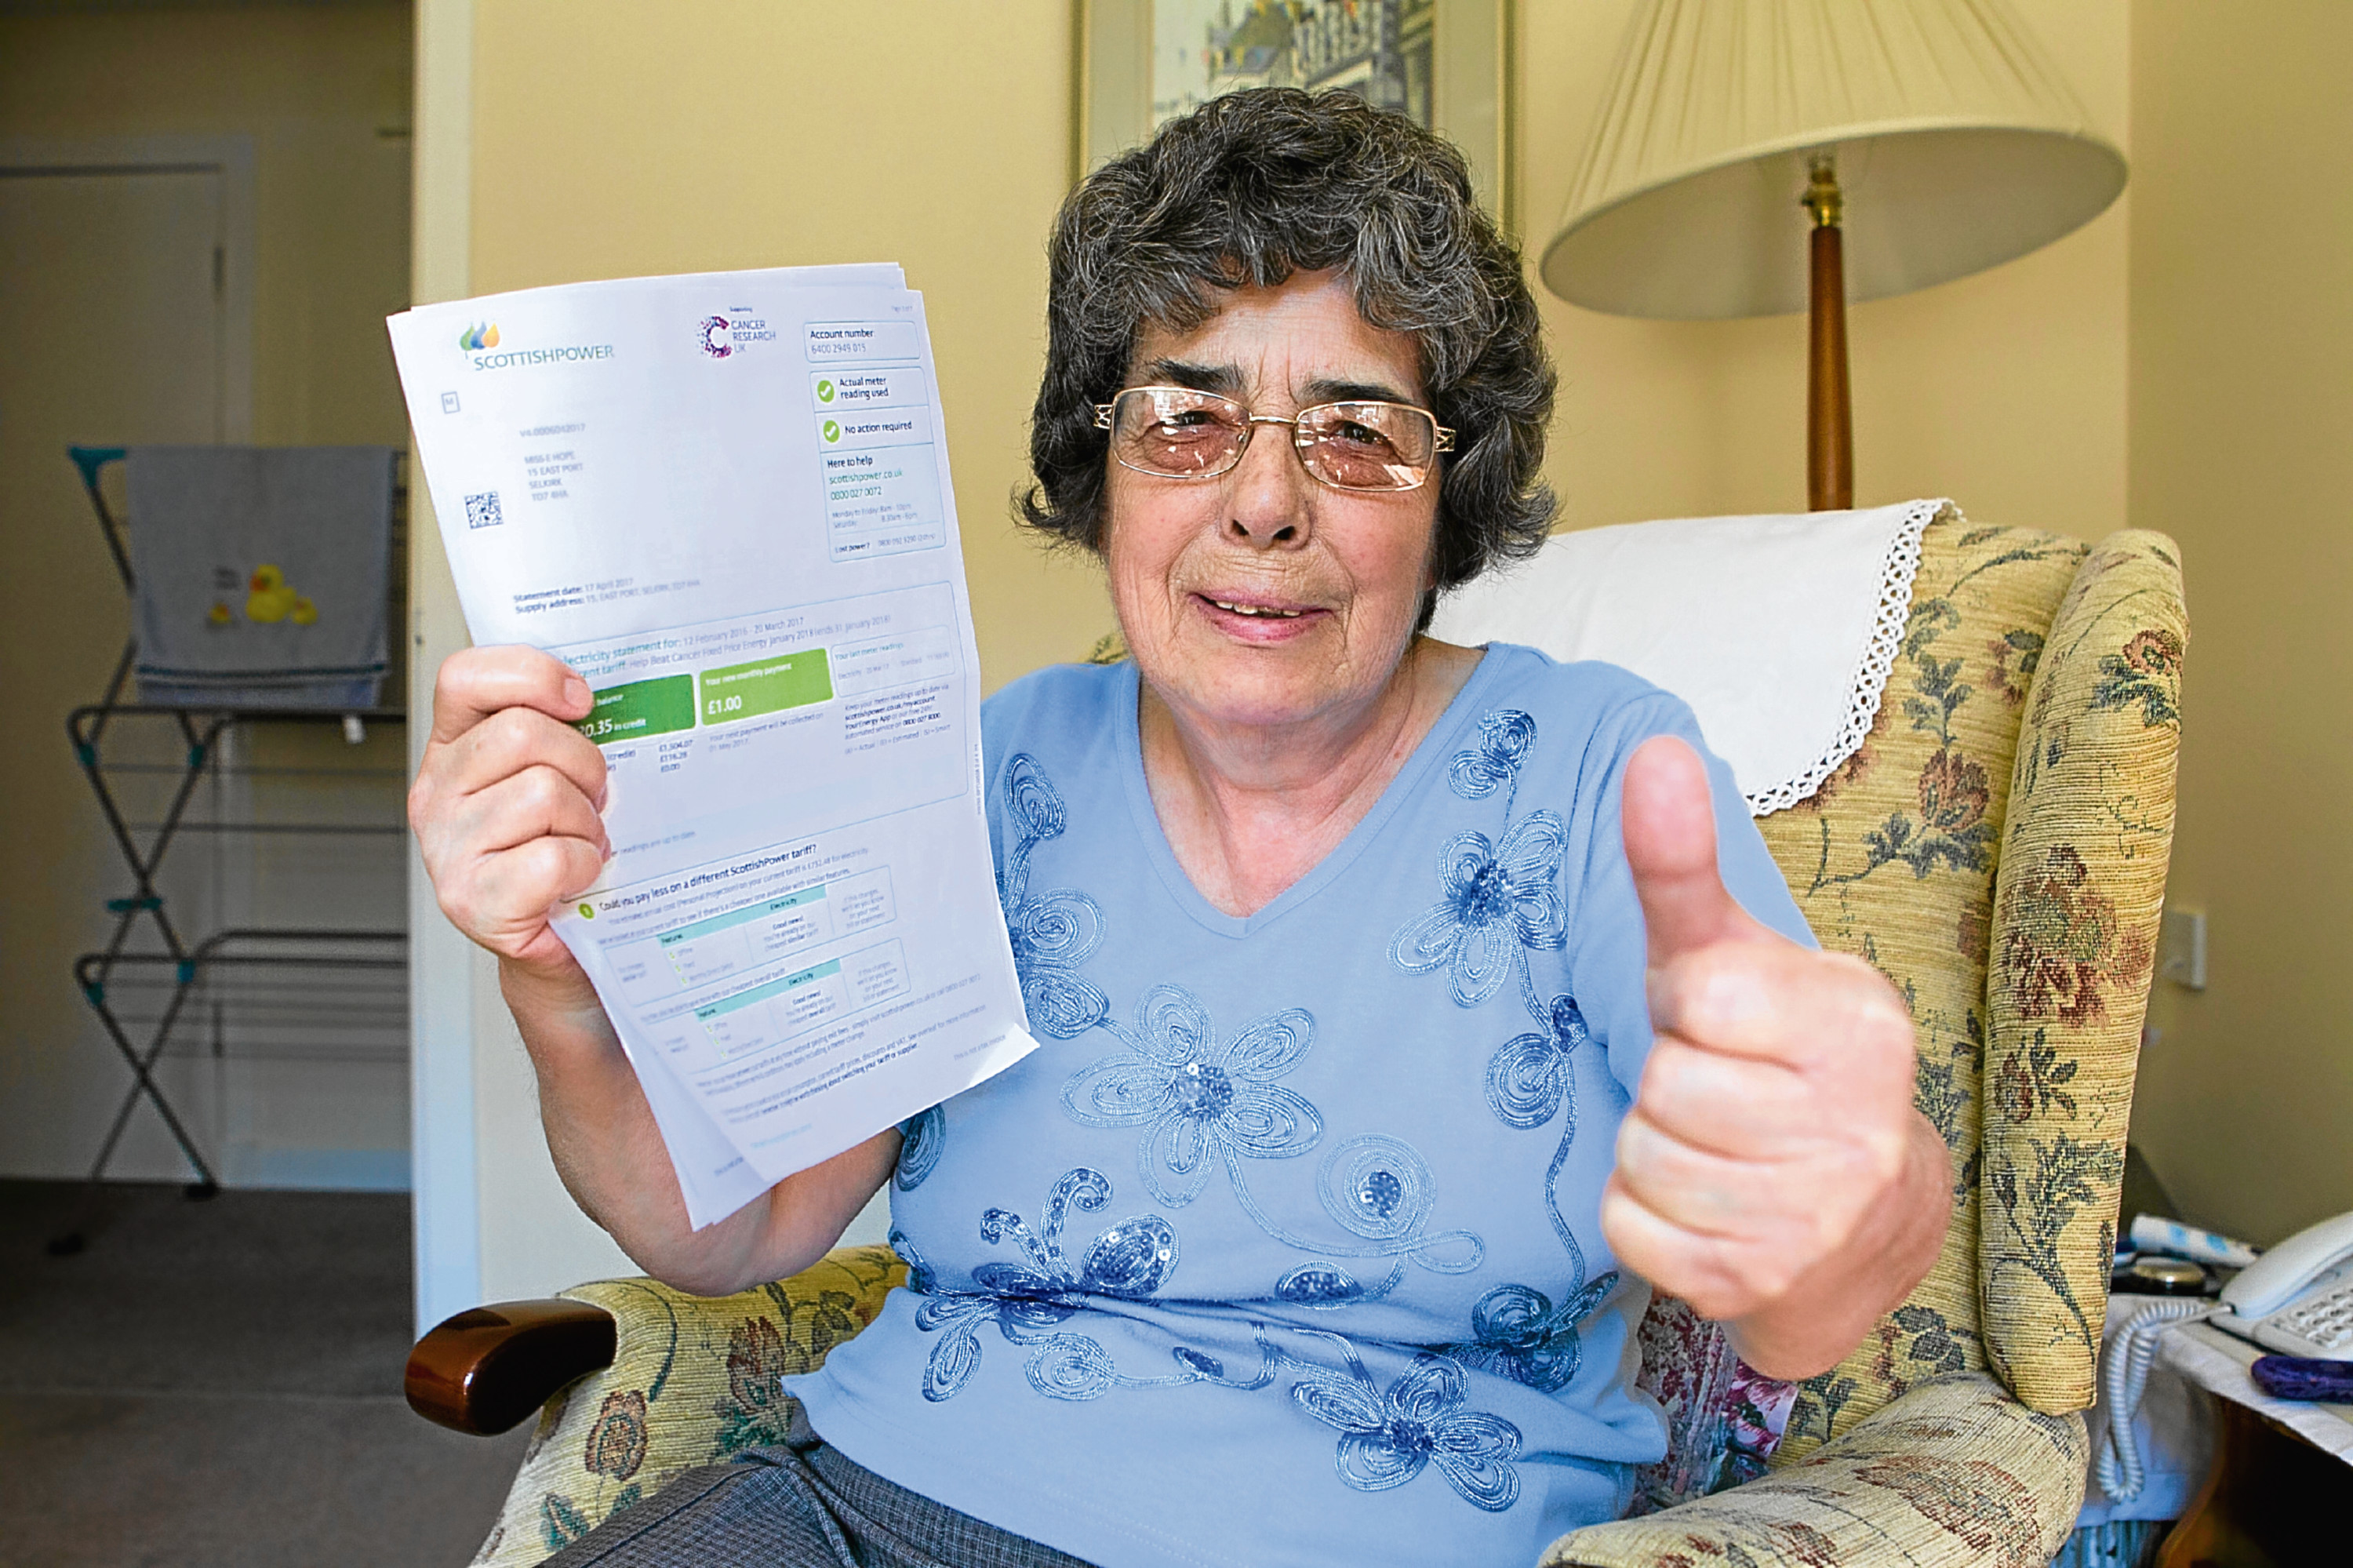 Evelyn Hope, who Raw Deal helped claim back money from Scottish Power (Andrew Cawley / DC Thomson)